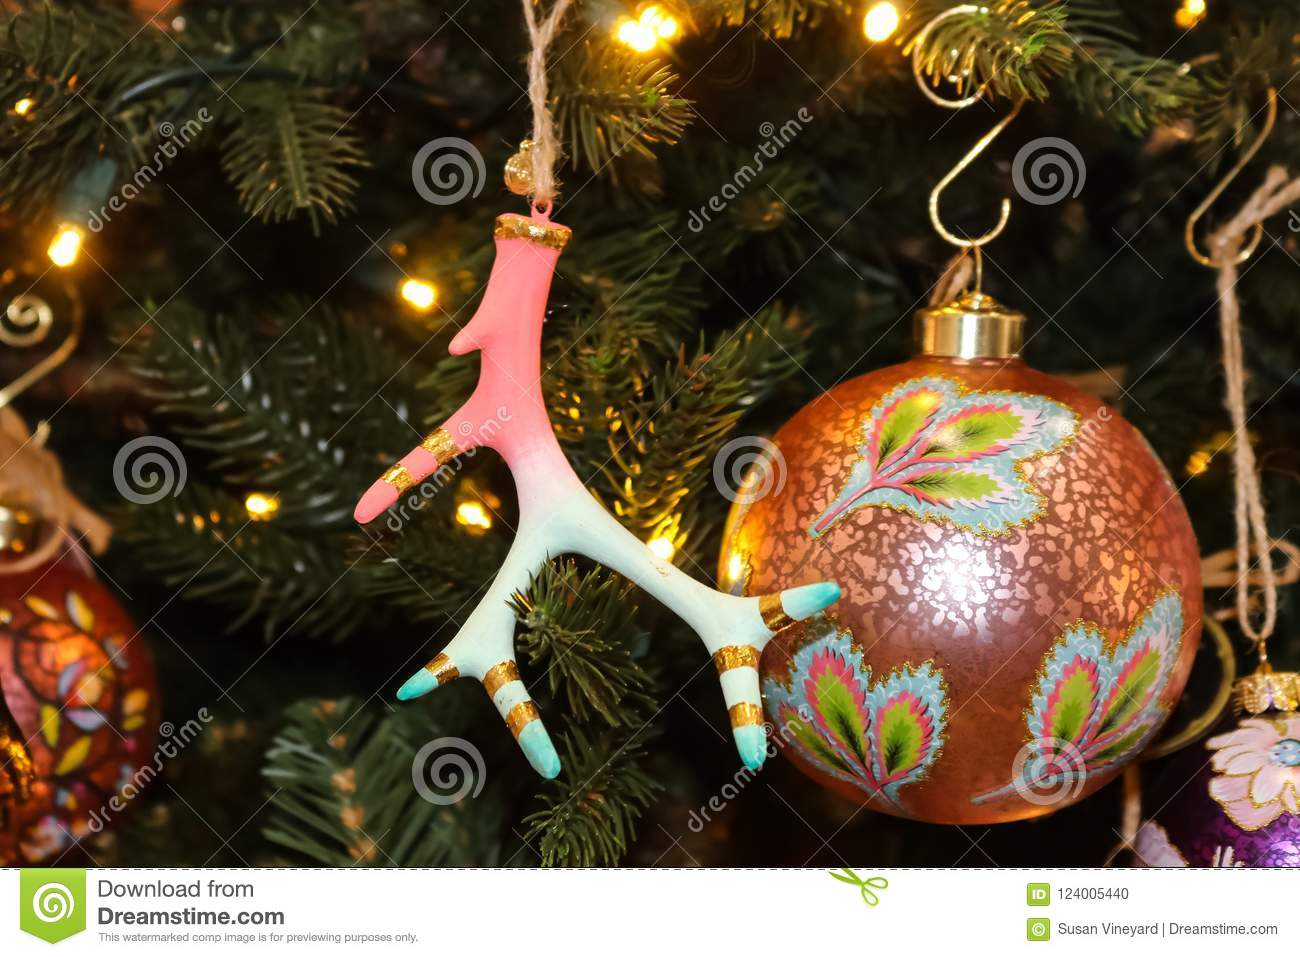 download beautiful pink and turquoise christmas ornaments including a deer horn with gold trim on christmas - Beautiful Christmas Ornaments